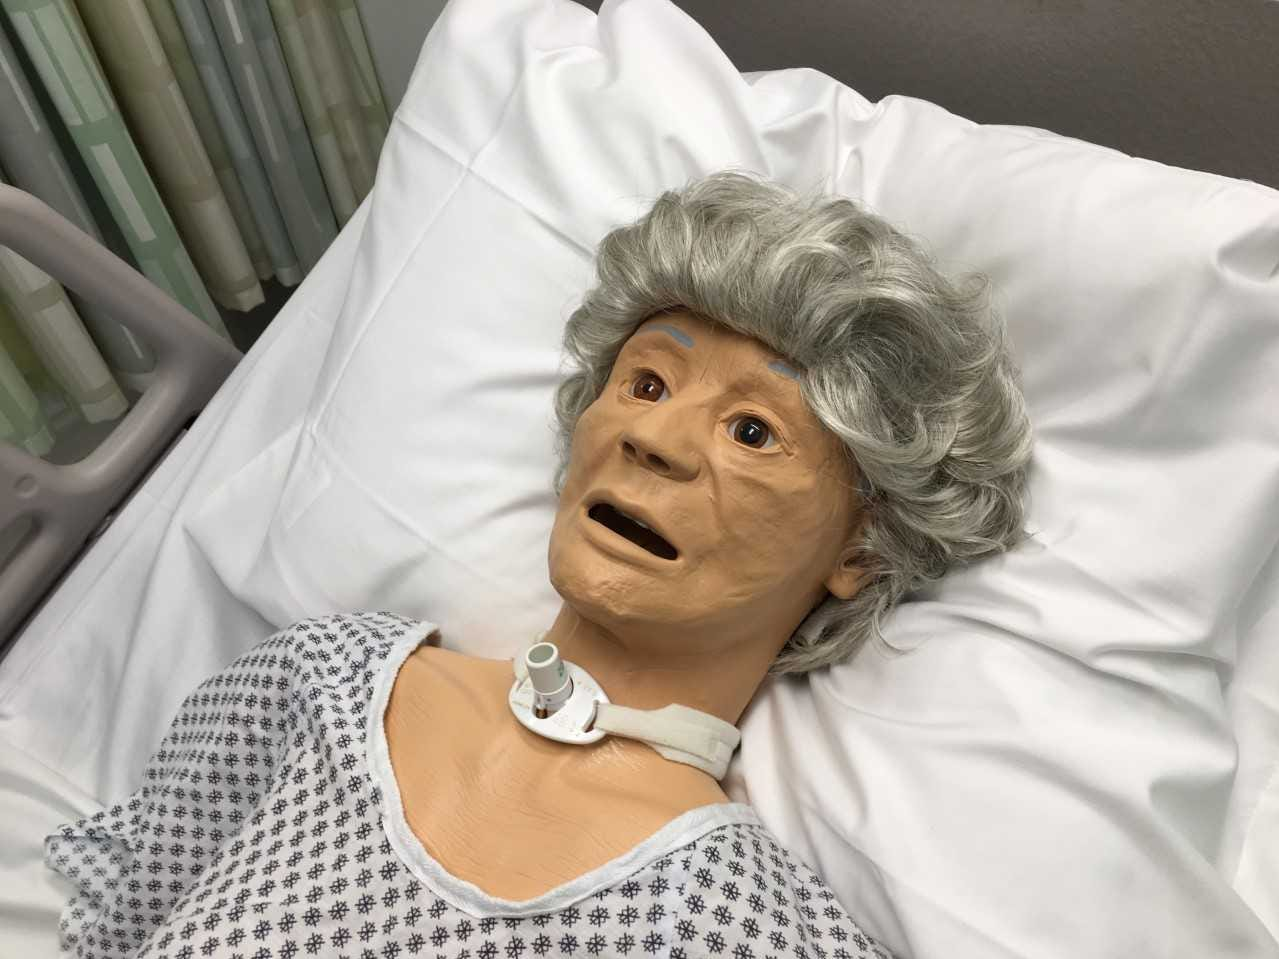 A patient simulator lies in a bed at Ivy Tech Community College in Muncie.